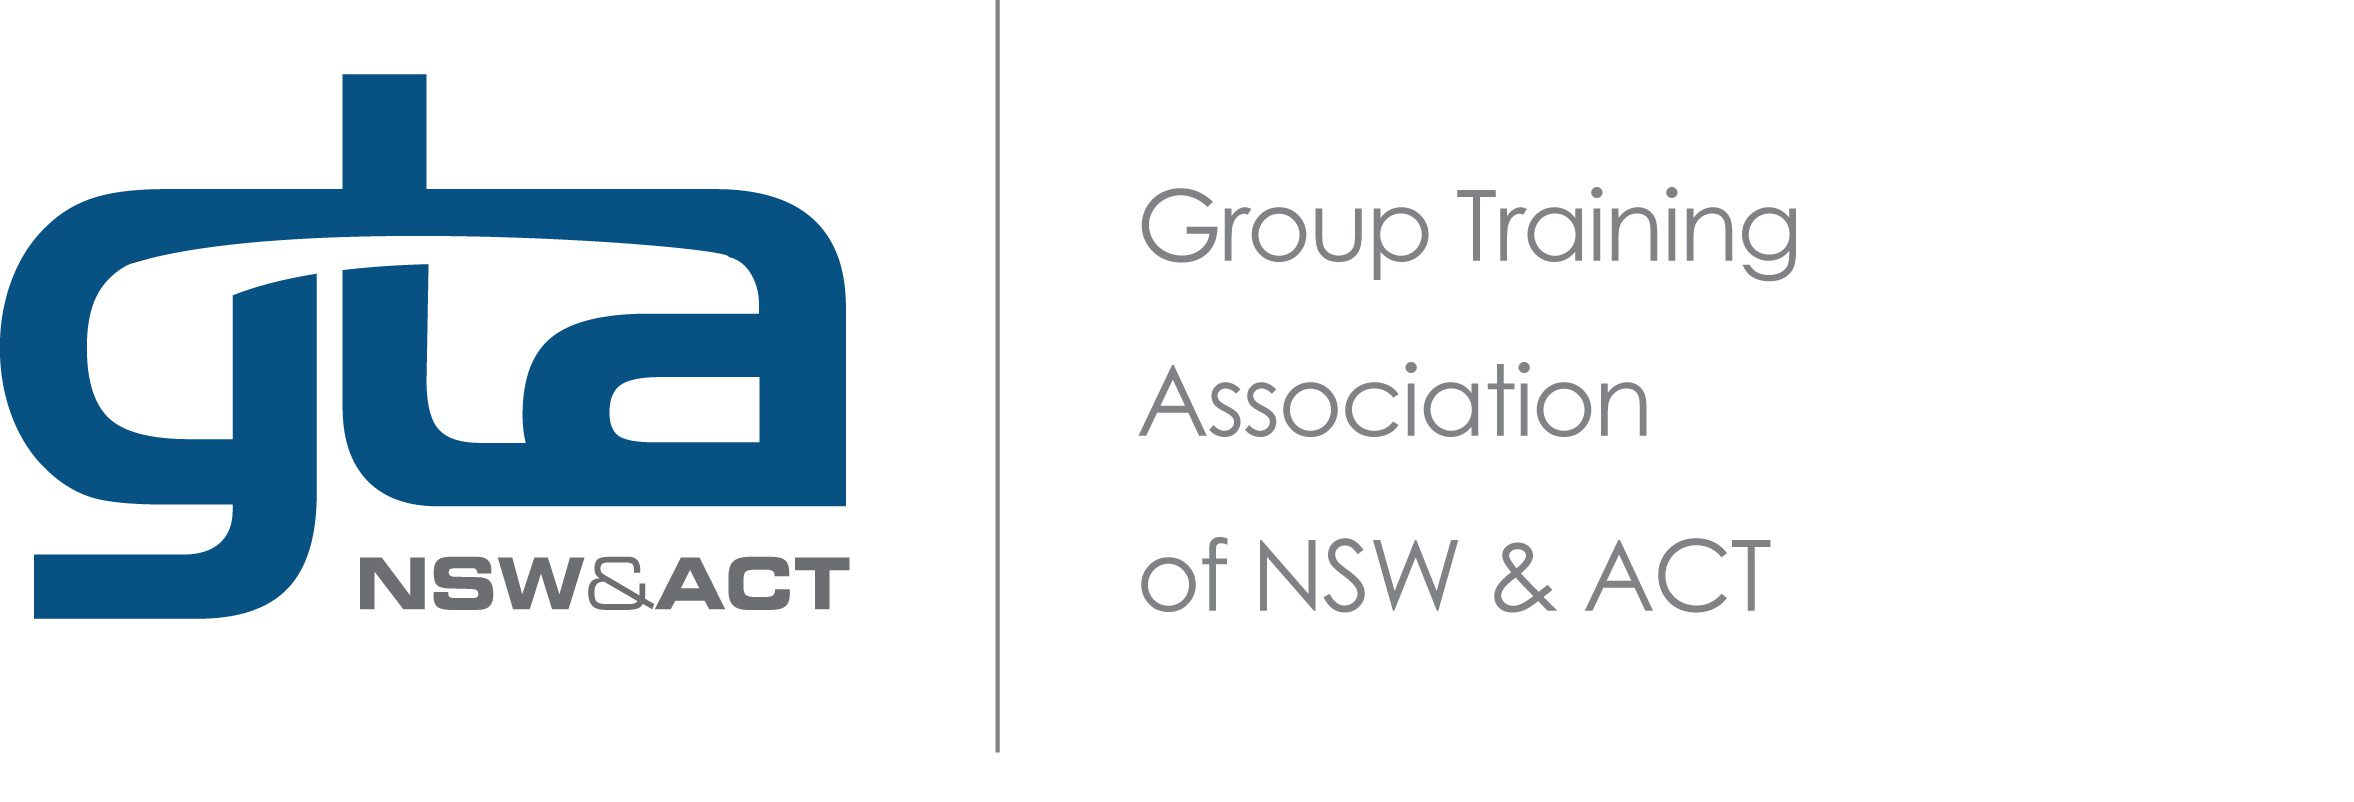 Group Training Association of NSW & ACT